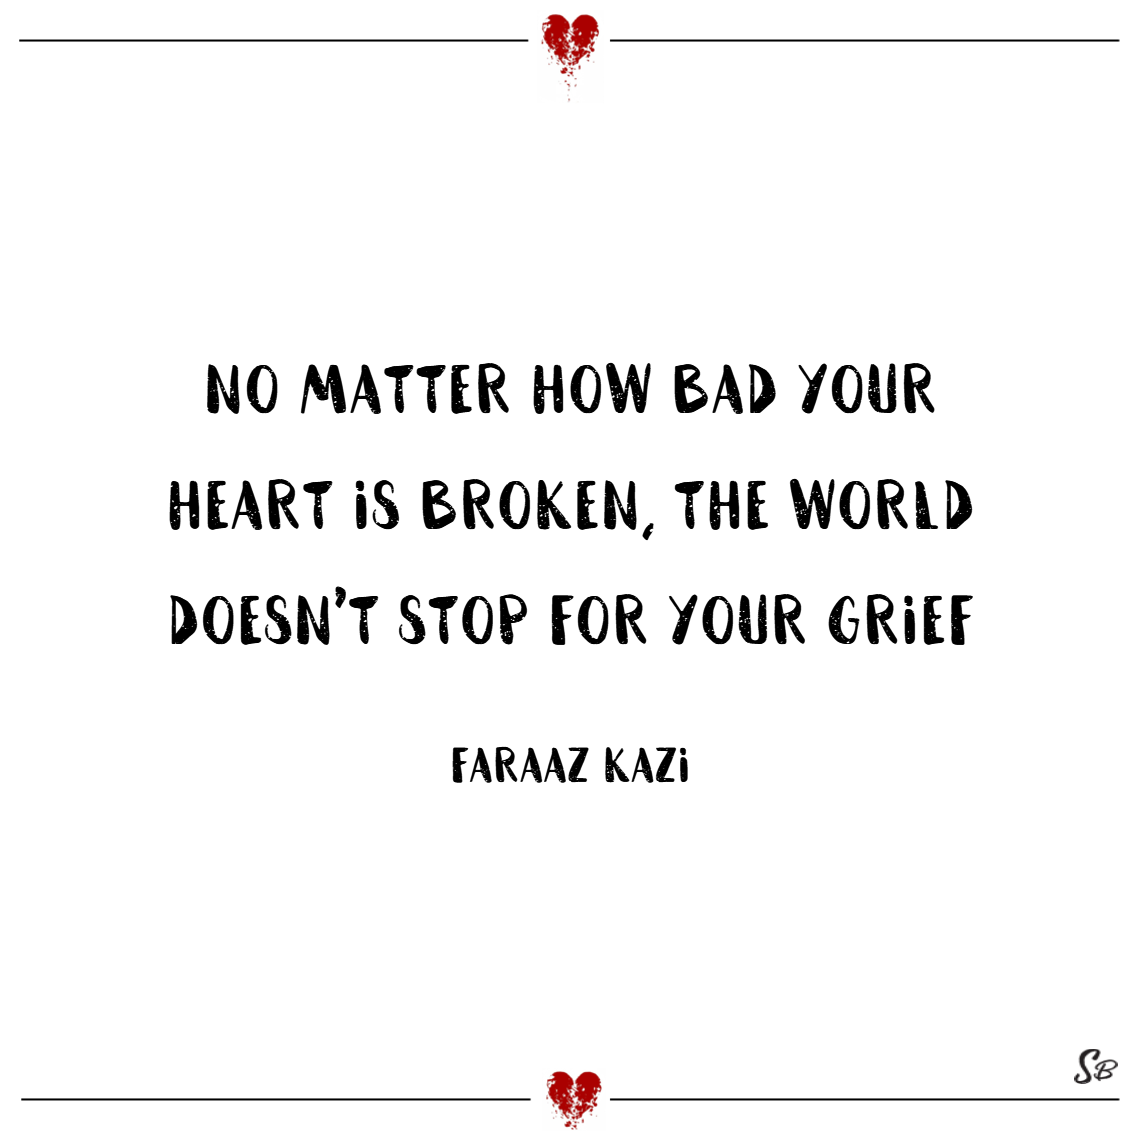 No matter how bad your heart is broken, the world doesn't stop for your grief. – faraaz kazi